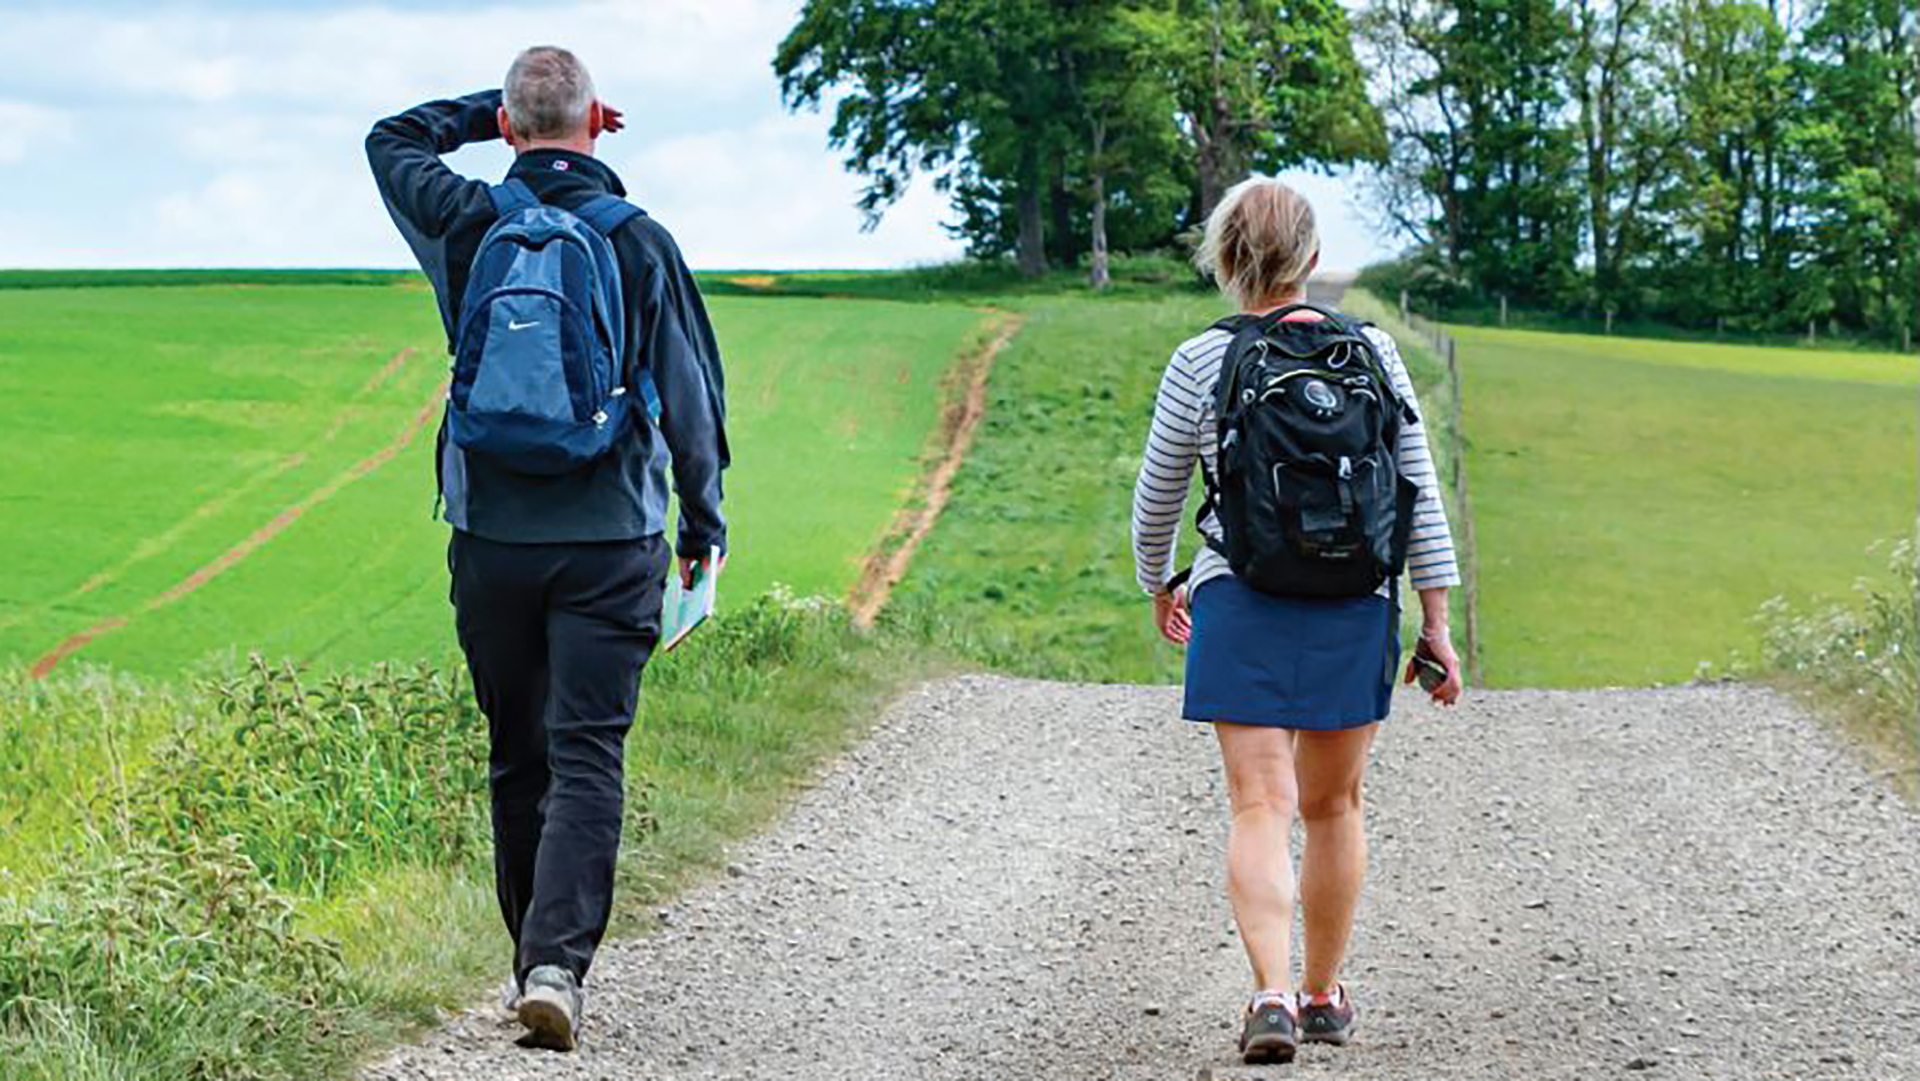 Image of man and woman walking